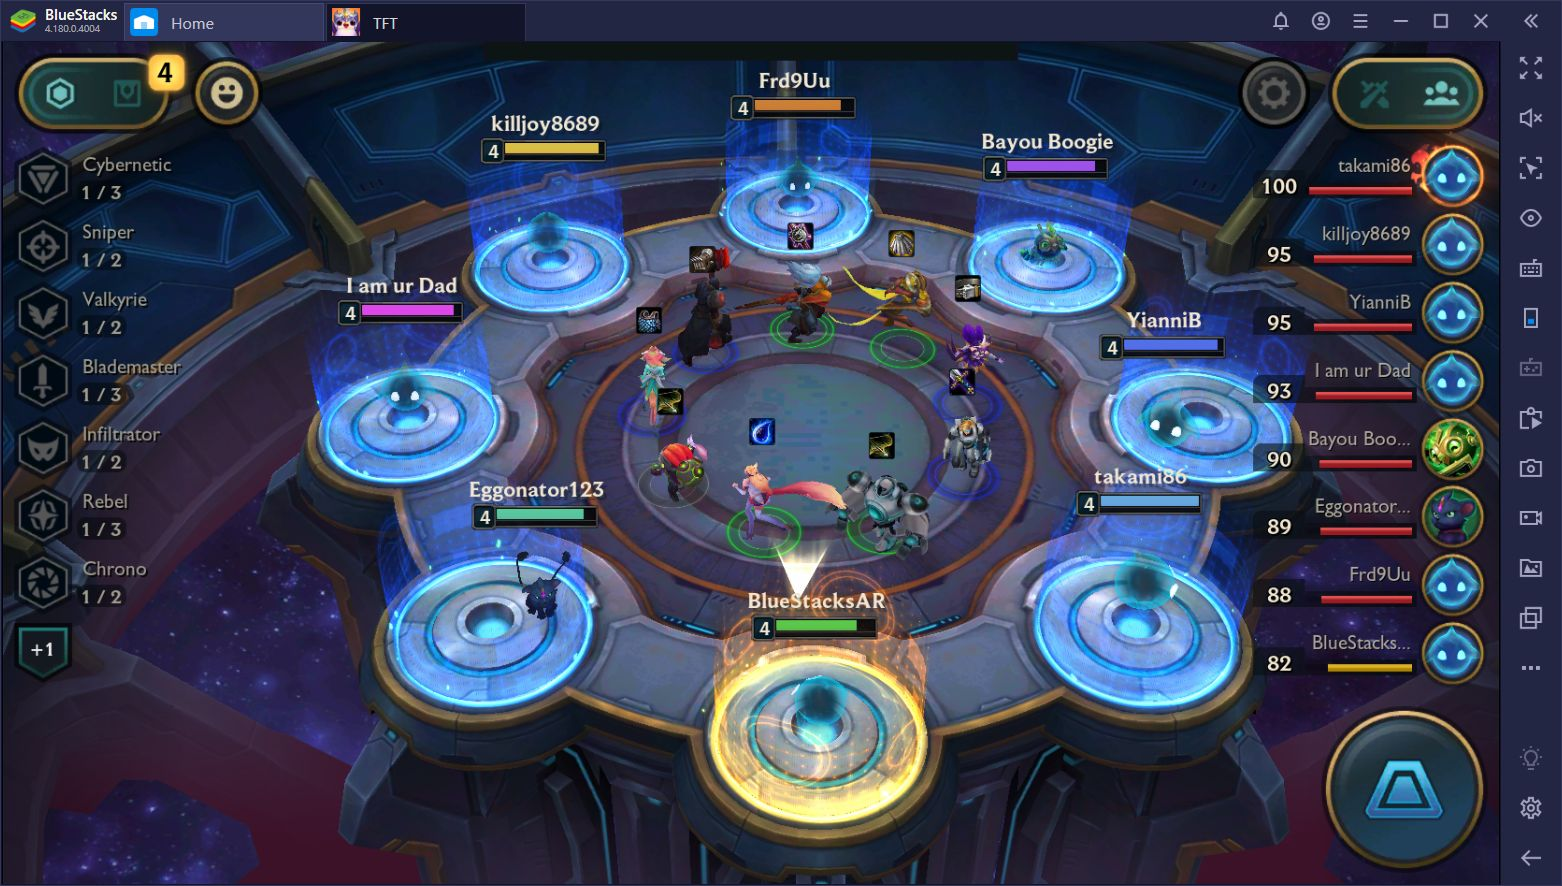 Teamfight Tactics on PC – All the Items Explained